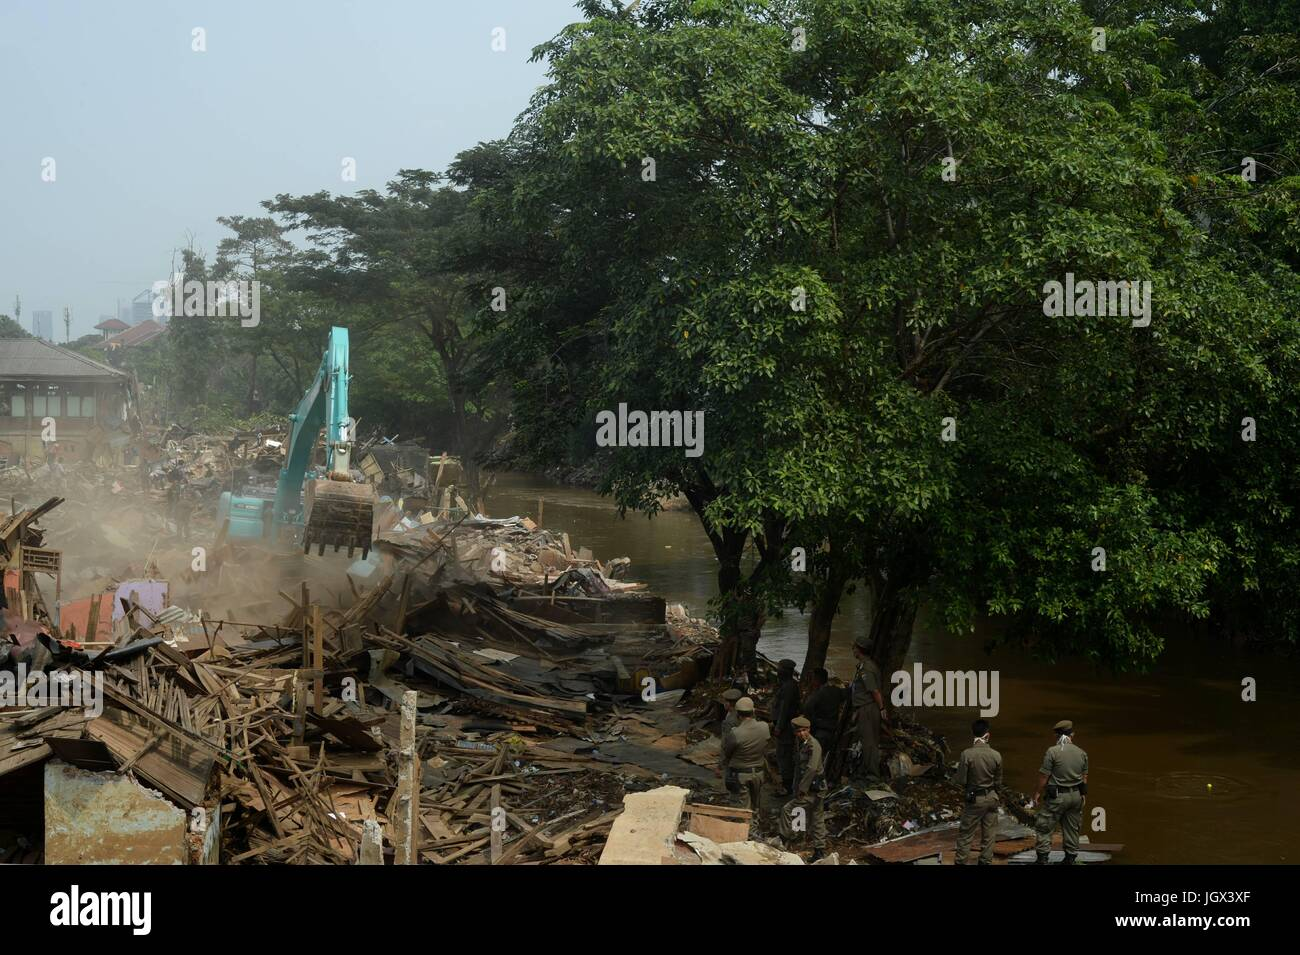 Jakarta, Indonesia. 11th July, 2017. An excavator destroys houses in the evicted area of the Bukit Duri neighbourhood - Stock Image